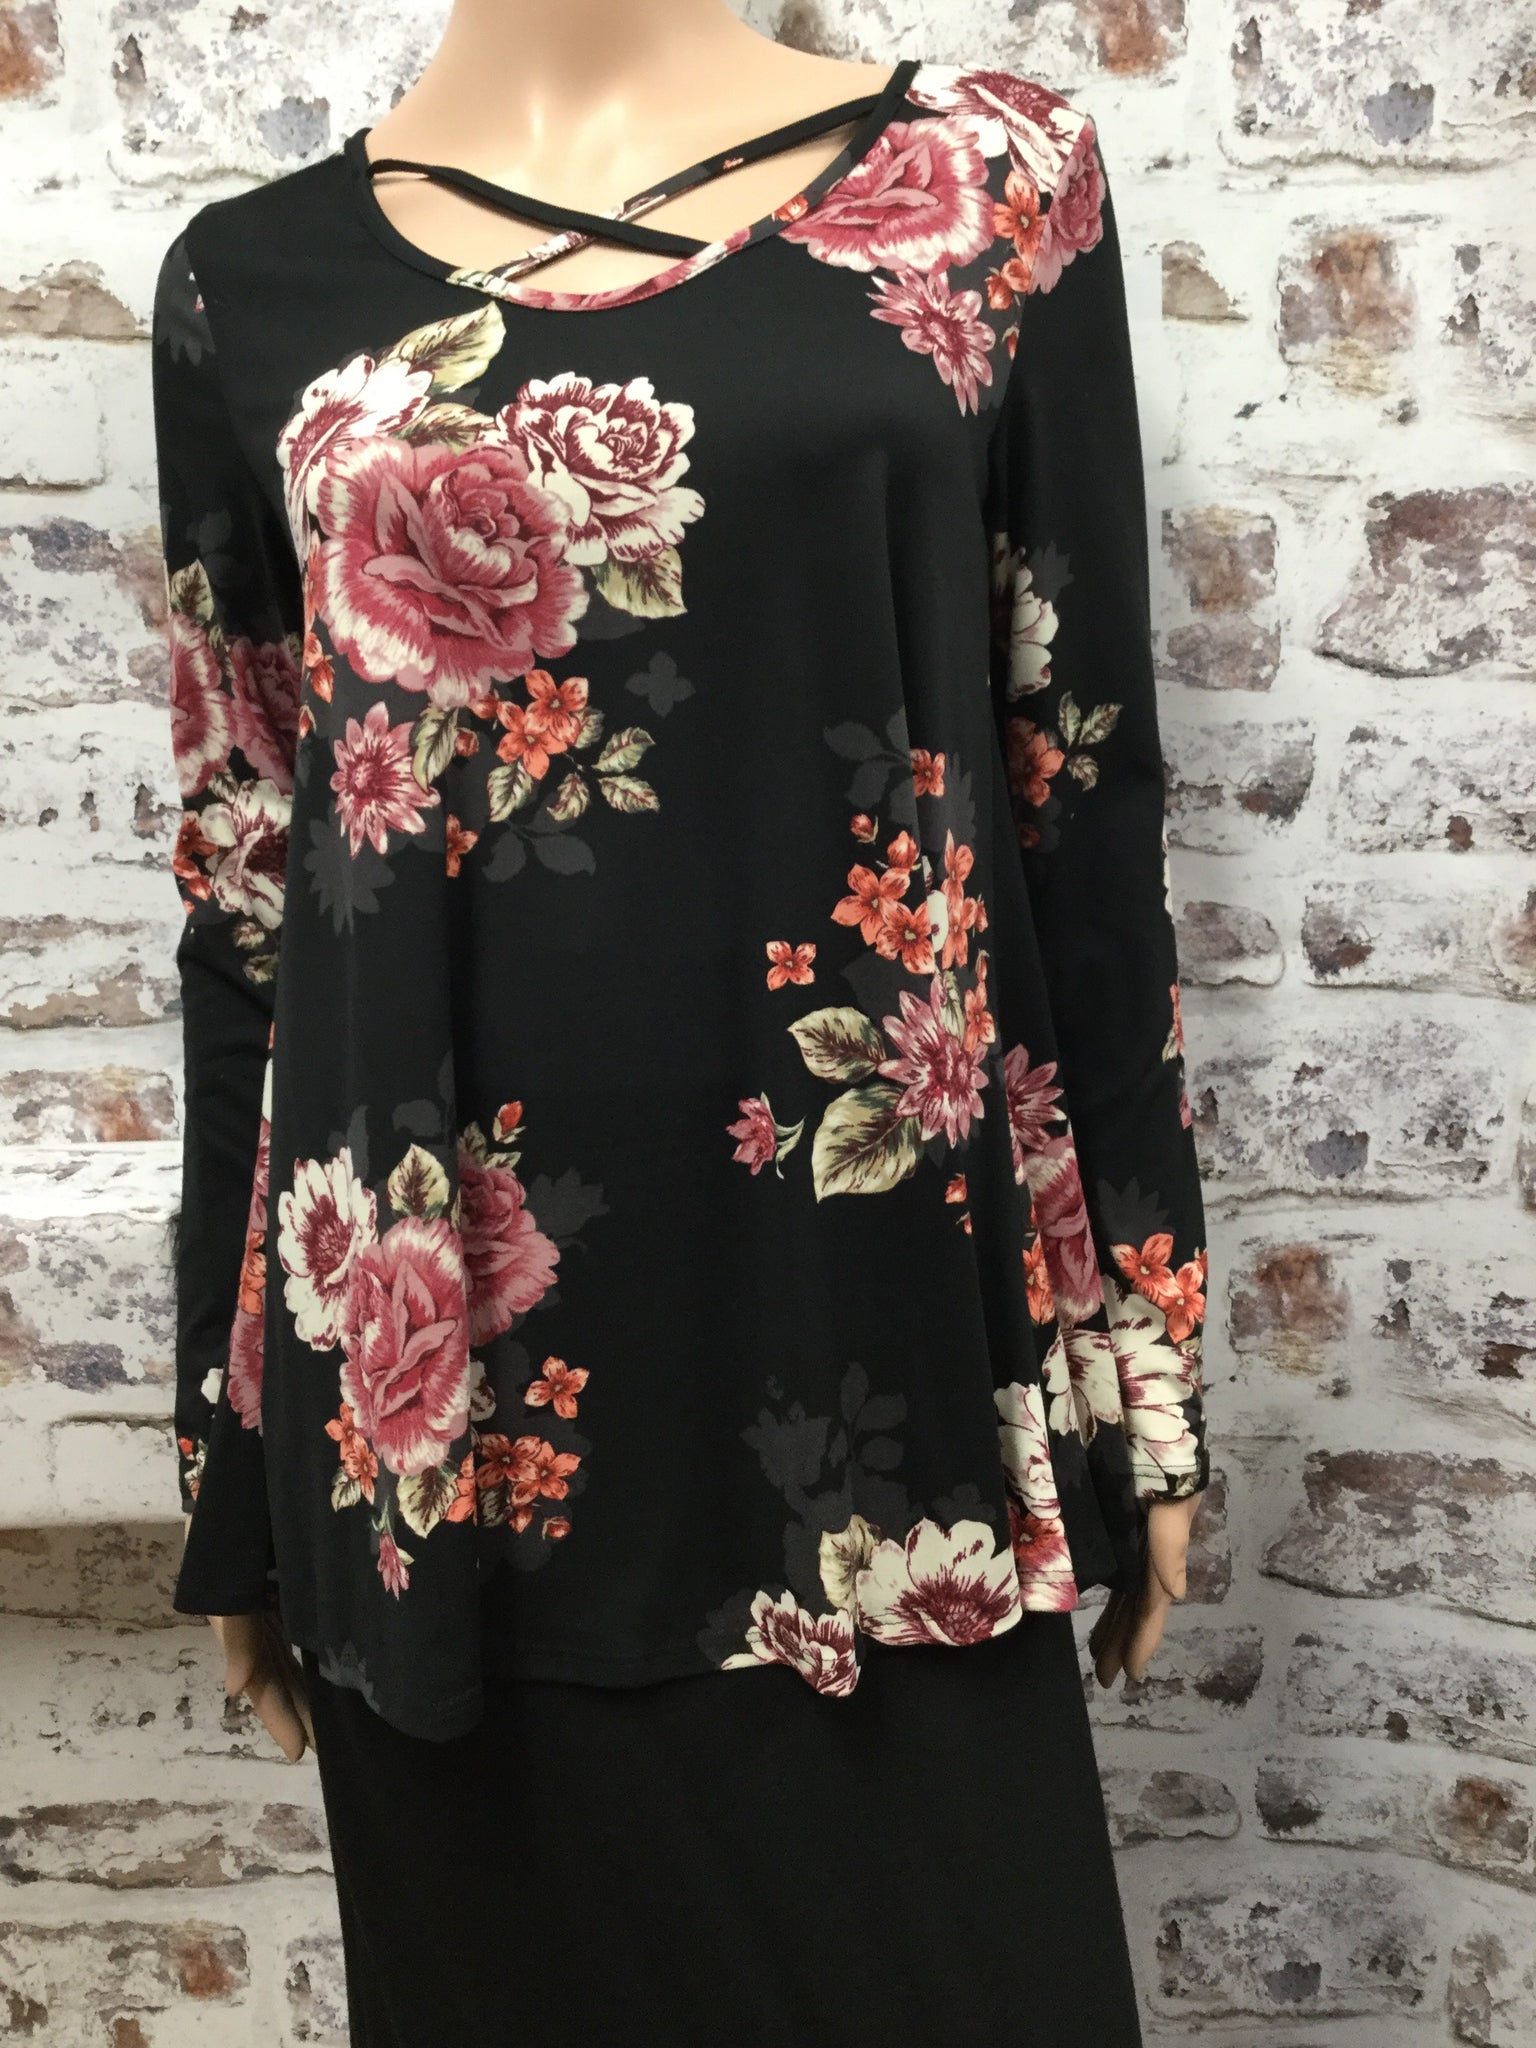 Long Sleeve Black Floral Cris Cross Top